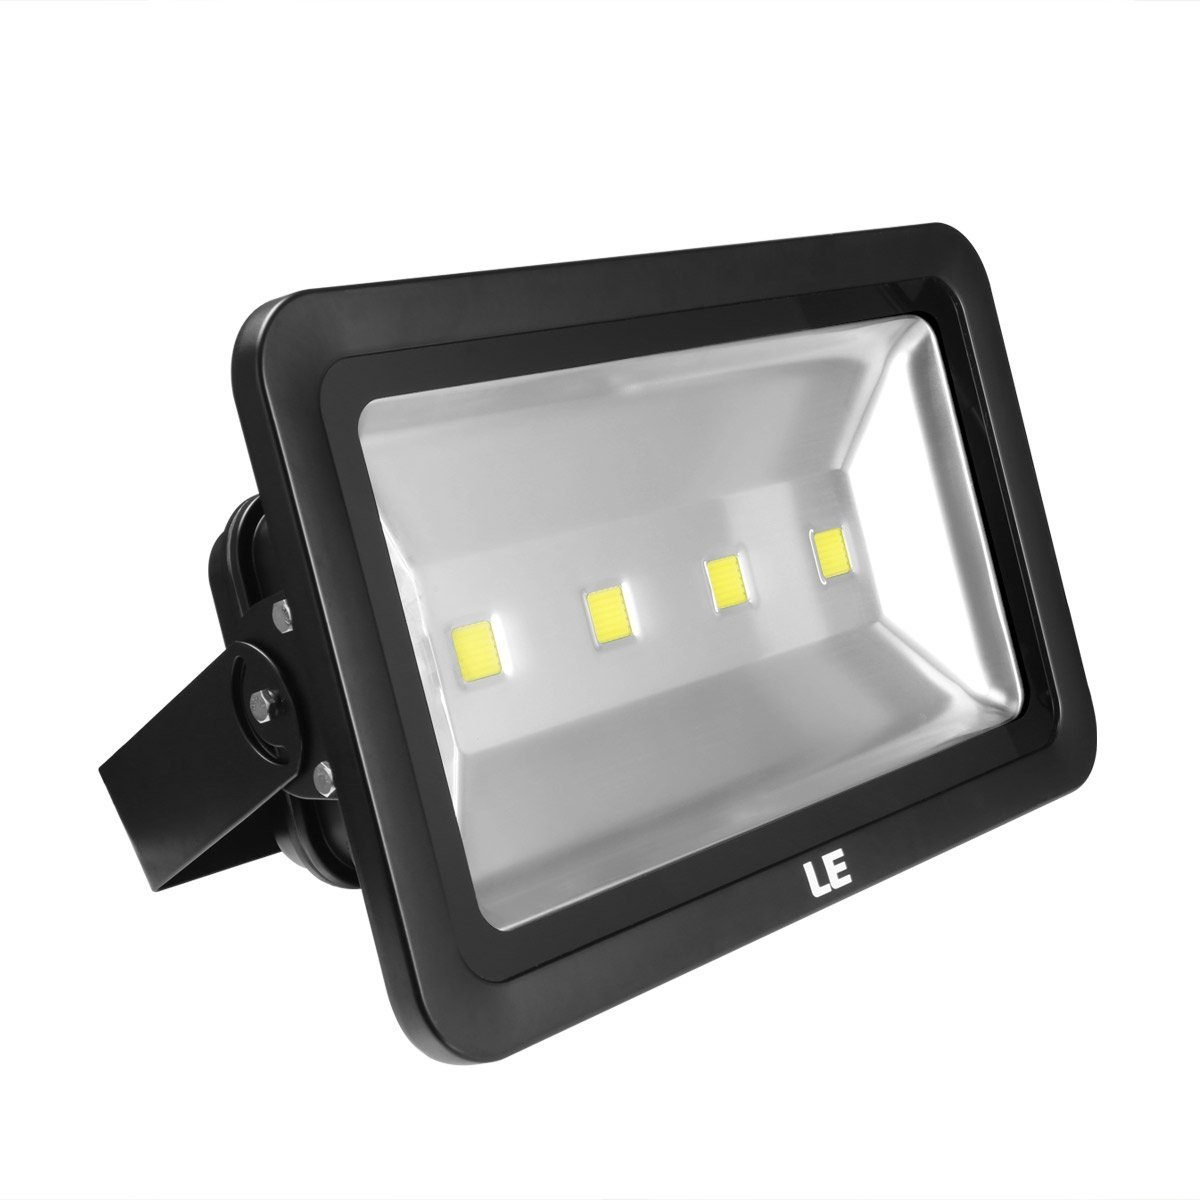 Top 10 best led flood lights in 2018 buyers guide lighting ever 240 watt led flood light workwithnaturefo